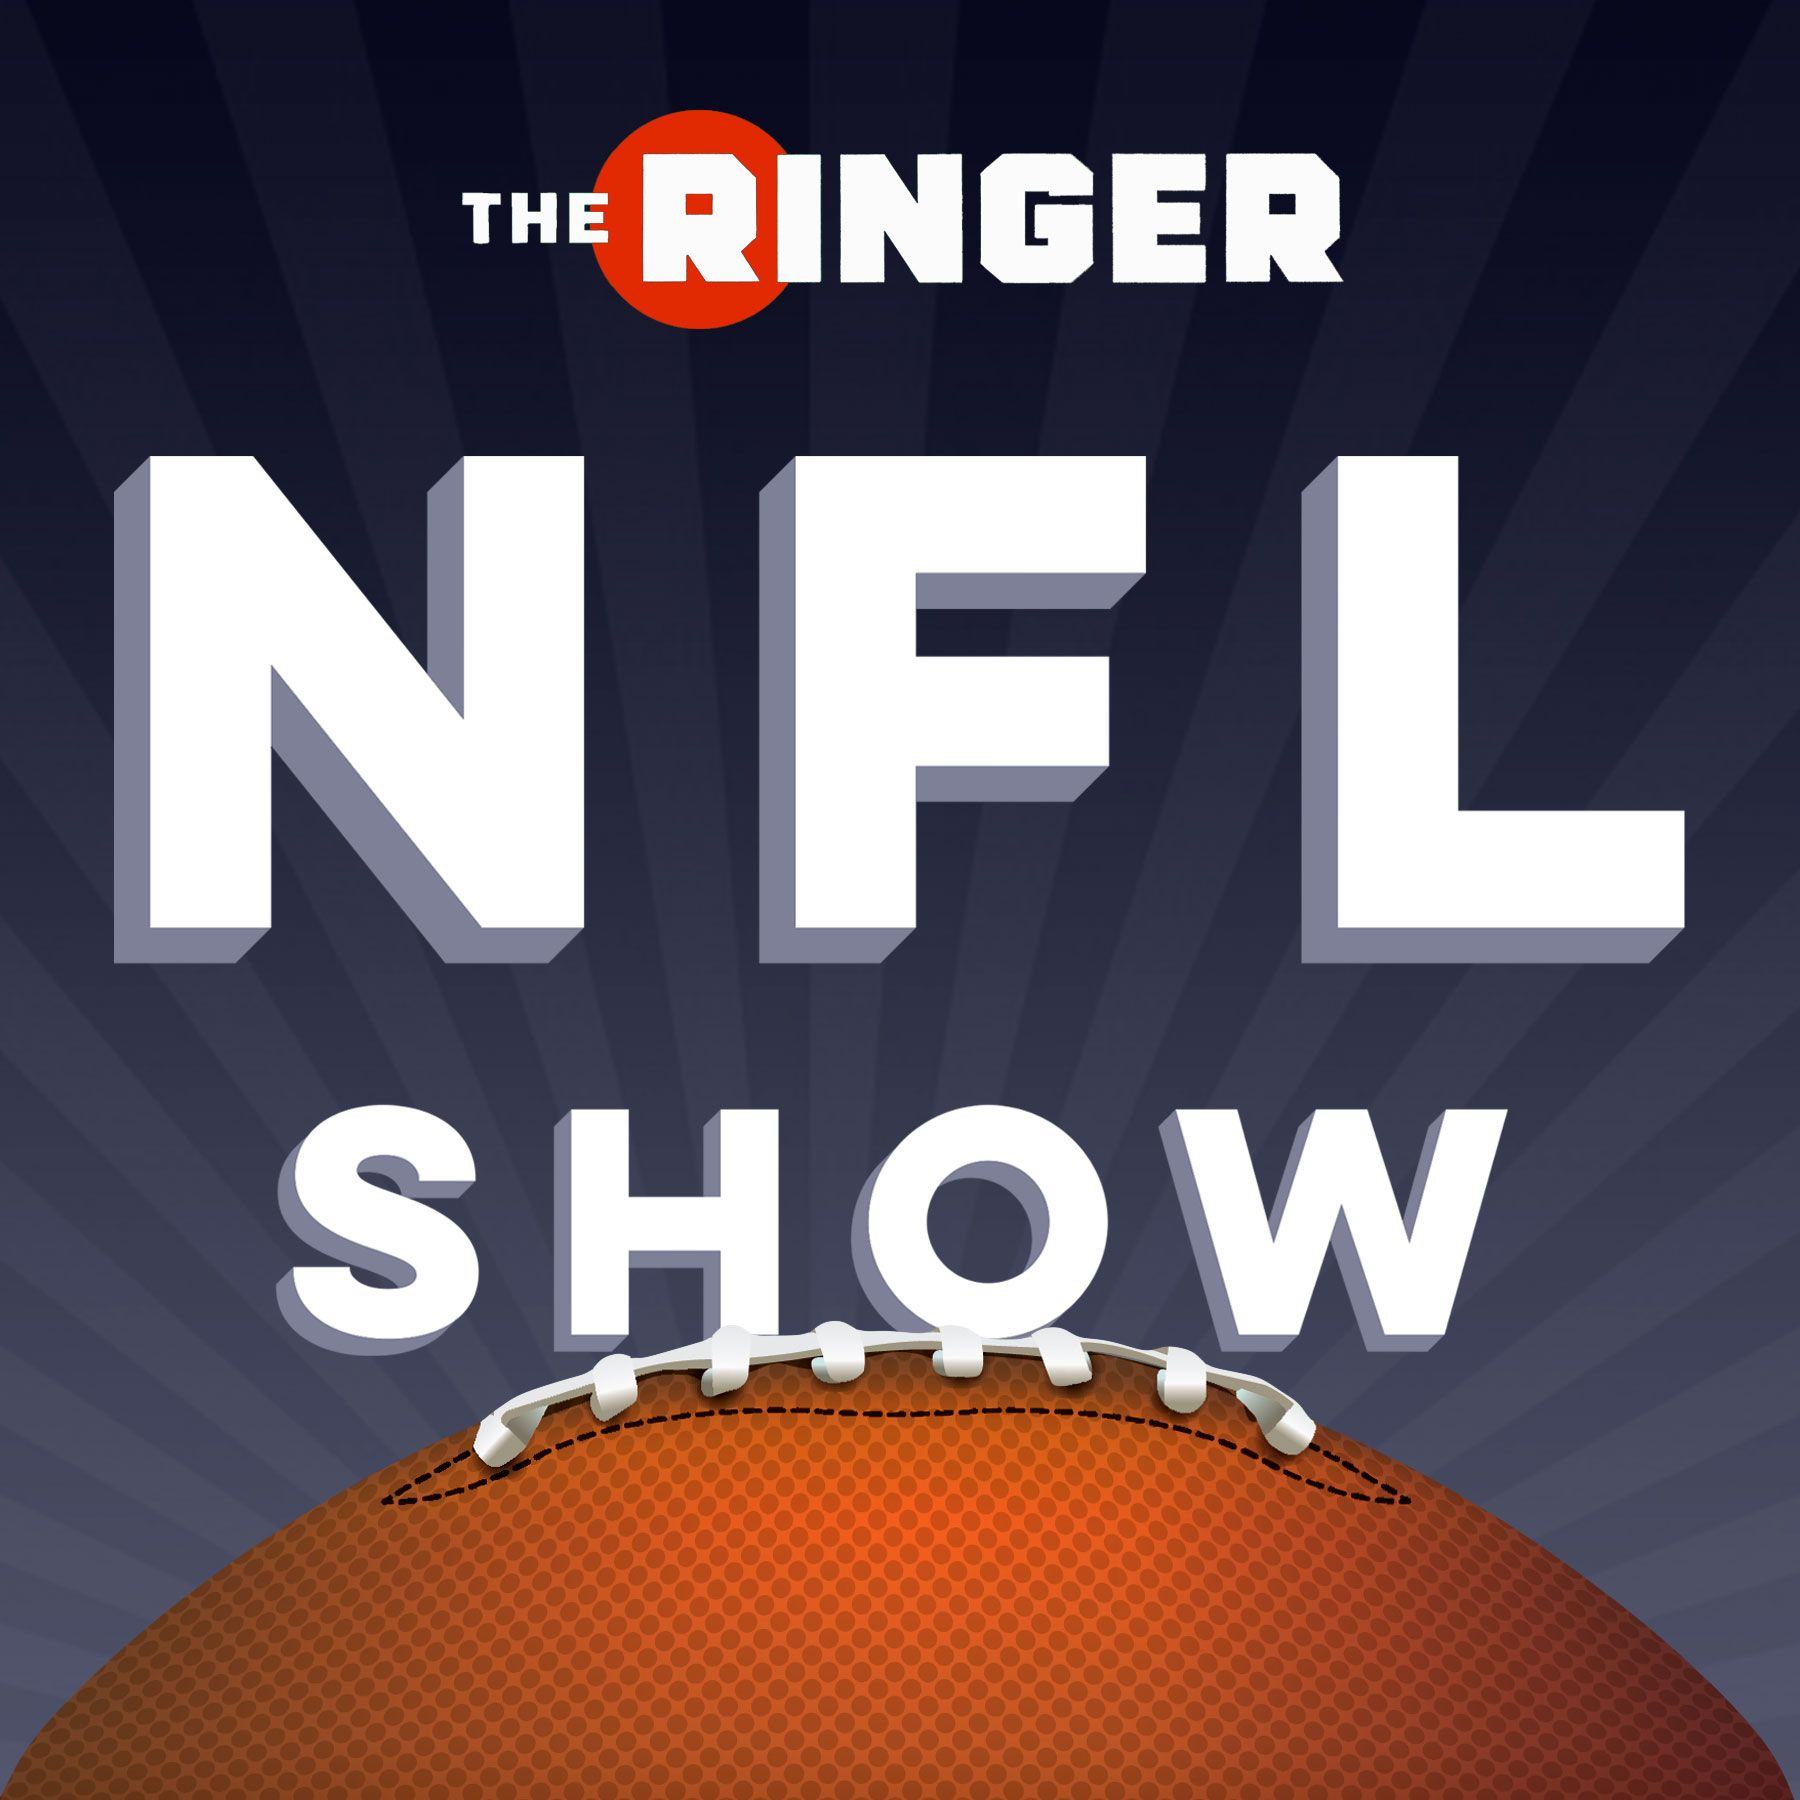 Model Franchises, the New York Giants' Culture Change, and a Dark Horse Super Bowl Contender With Peter Schrager | The Ringer NFL Show